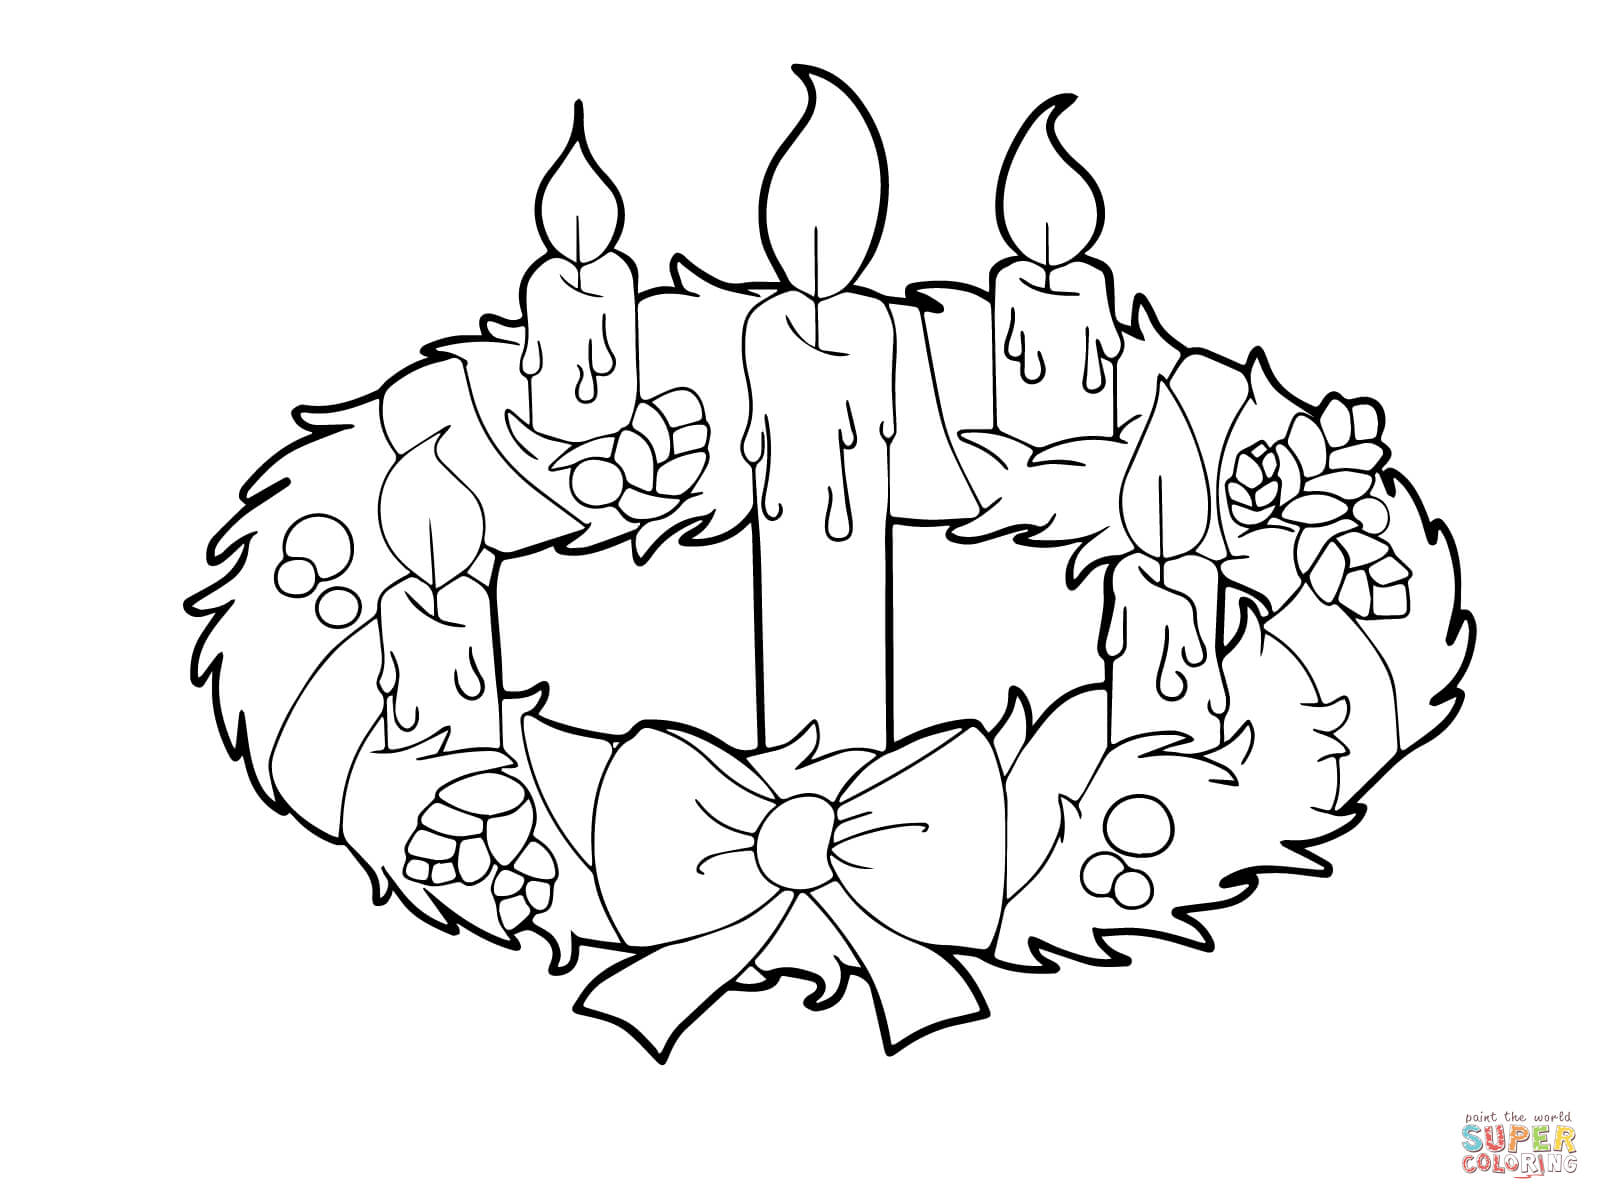 advent coloring pages for adults - photo#20